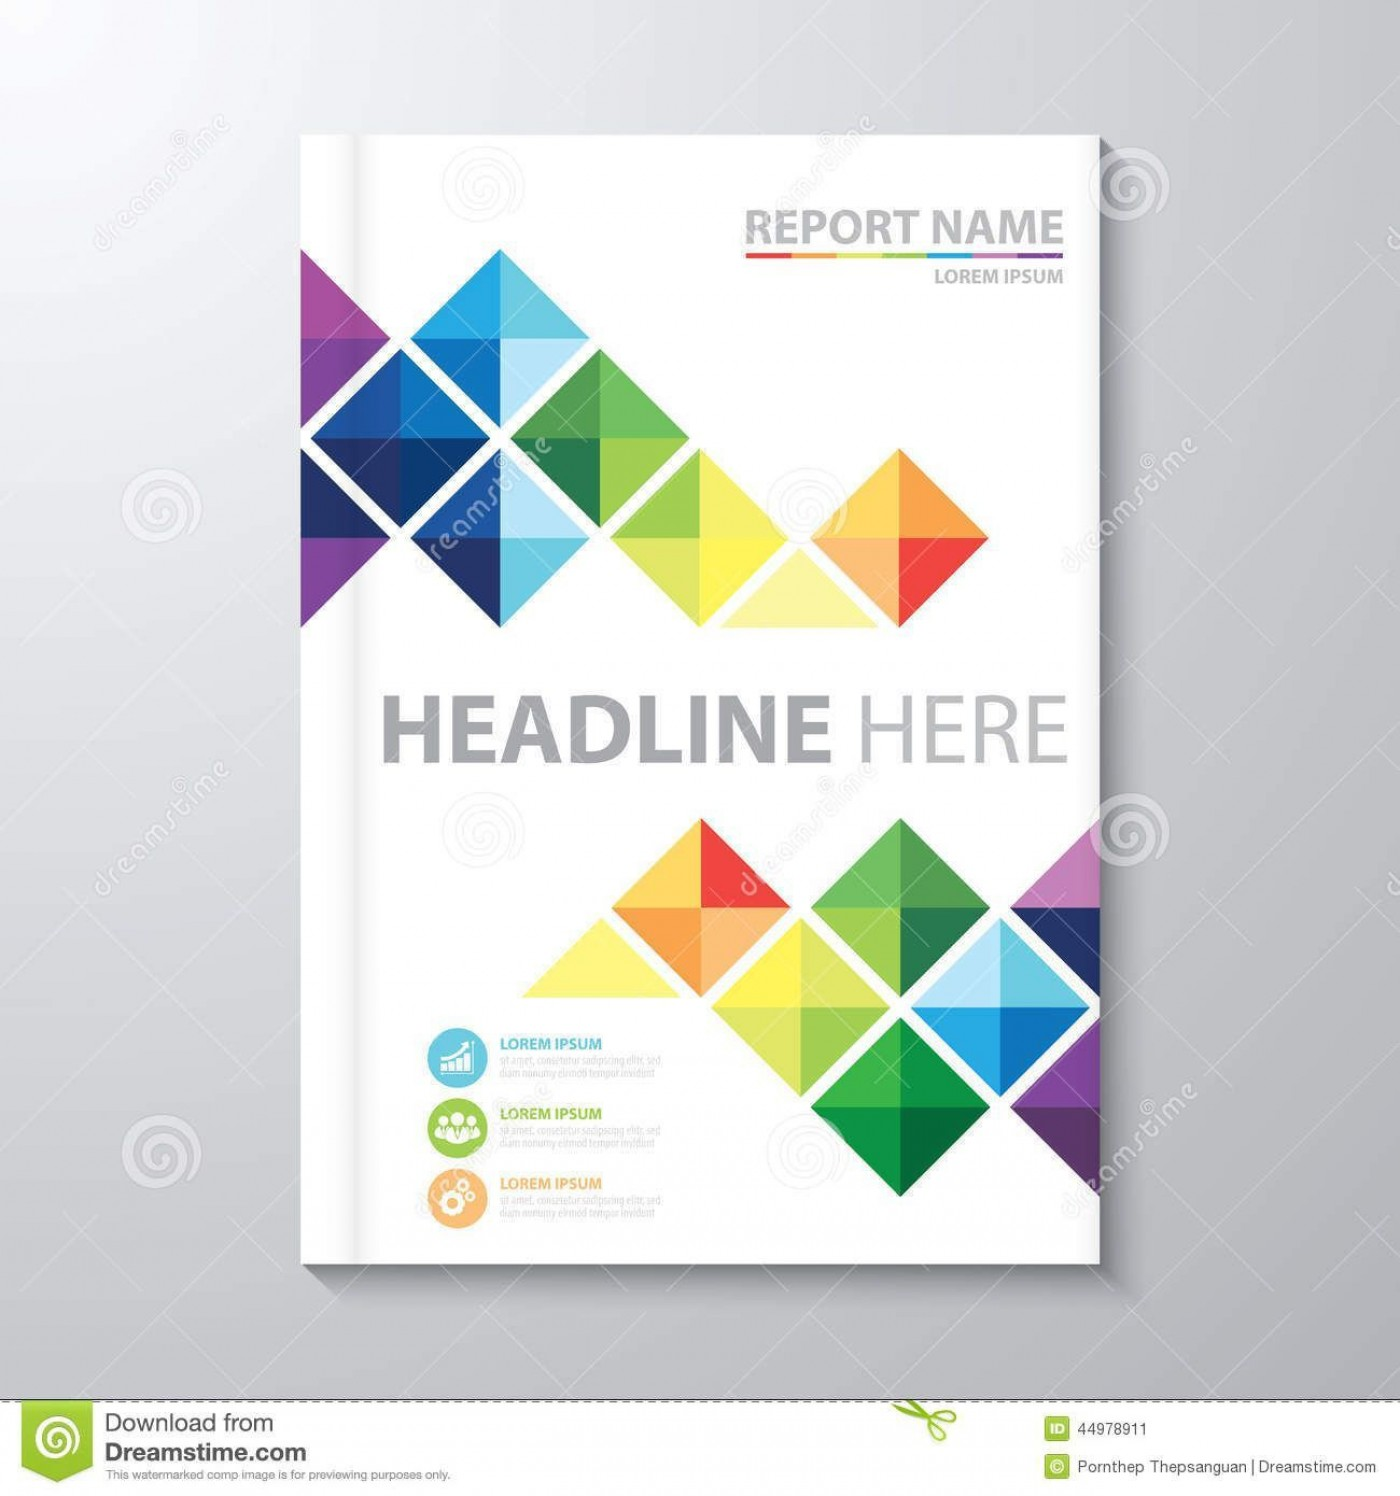 001 Incredible Free Download Annual Report Cover Design Template Example  Indesign In Word1400